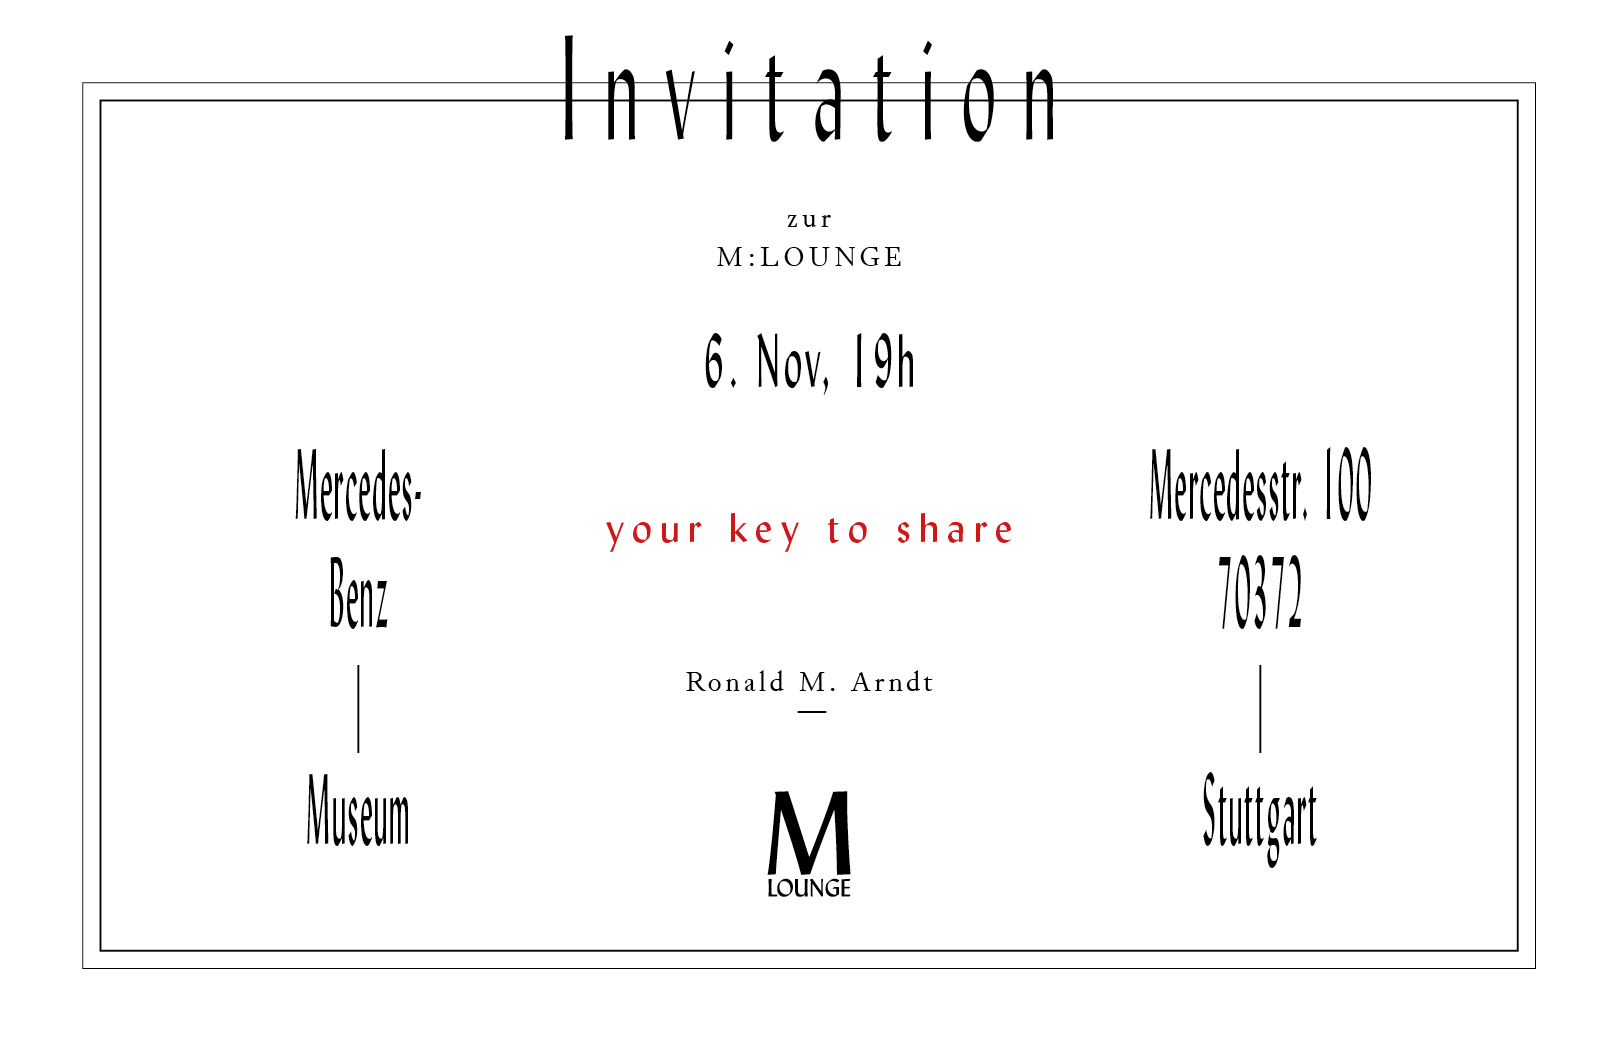 171018_M-LOUNGE_Invitation_WEB.jpg